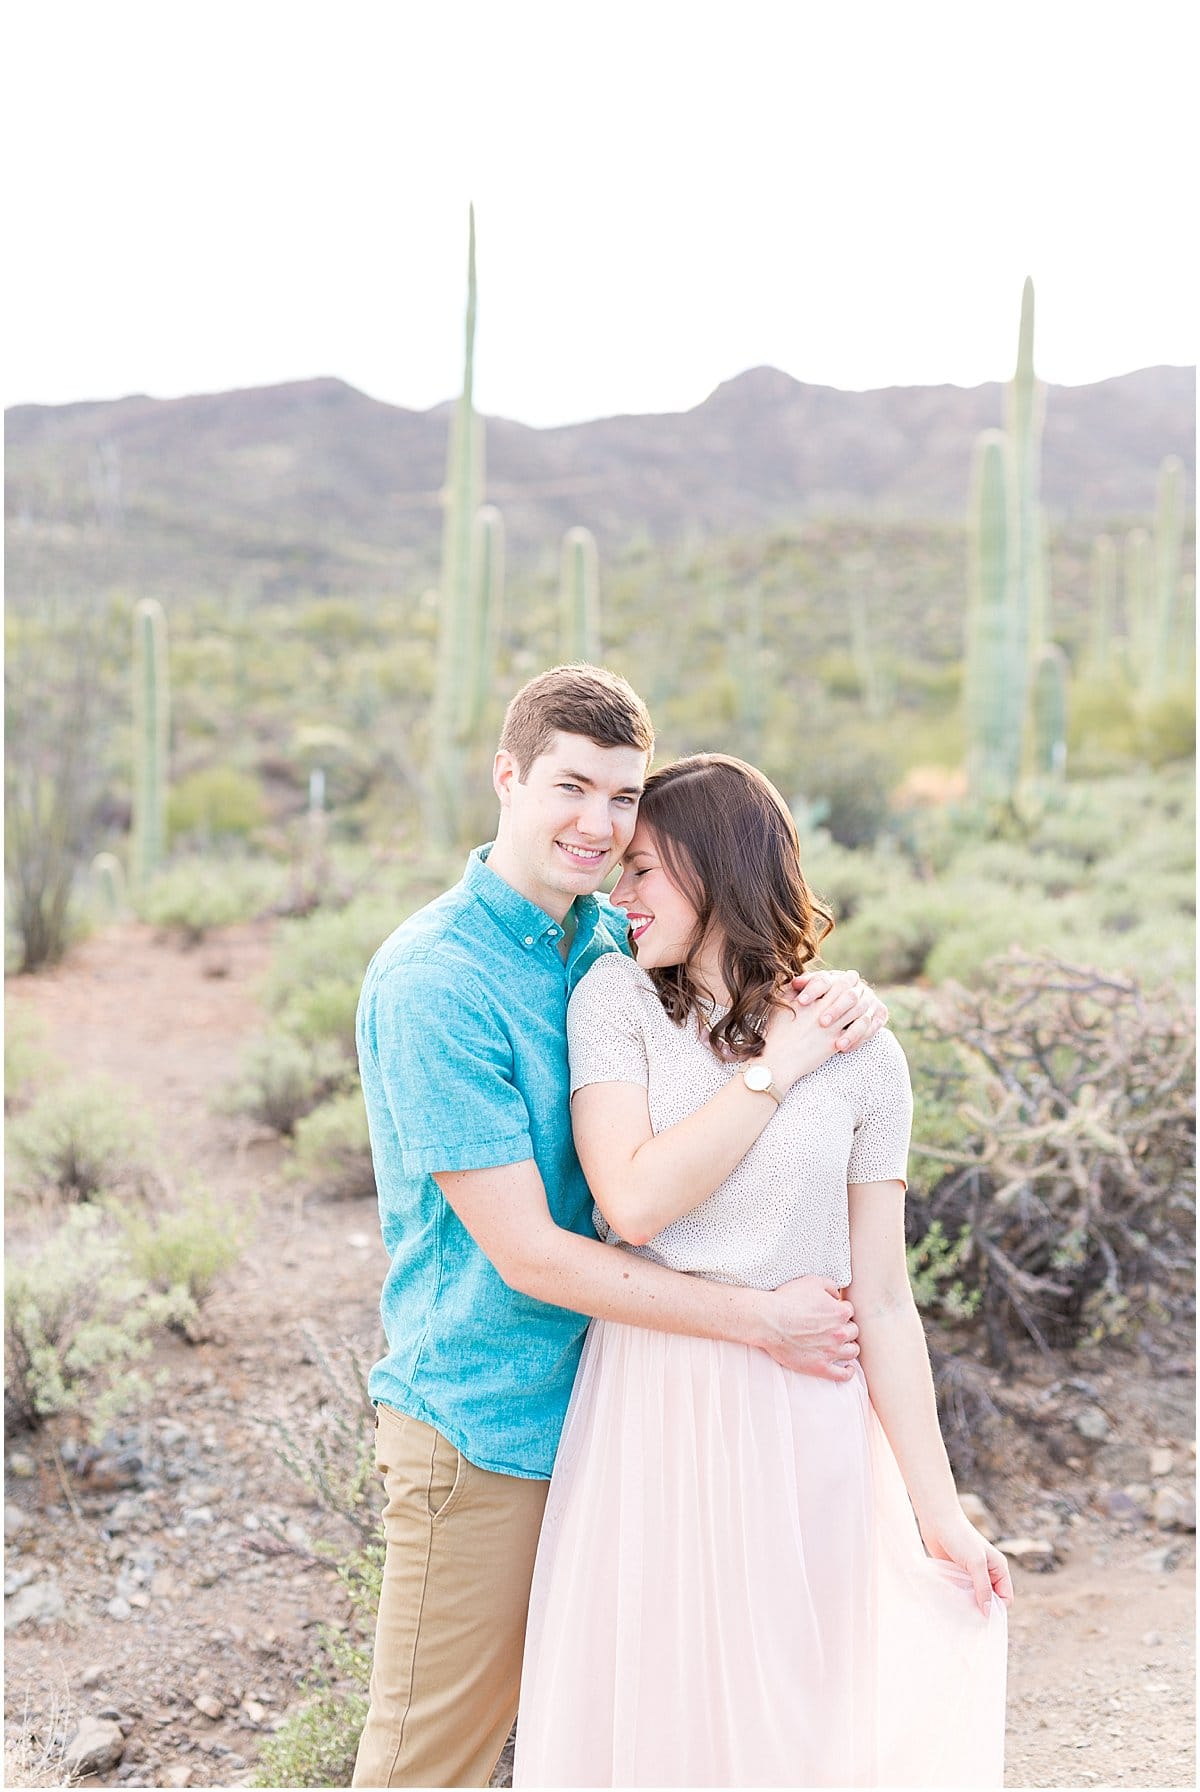 married-arizona-desert-cassidymrphotography_0005